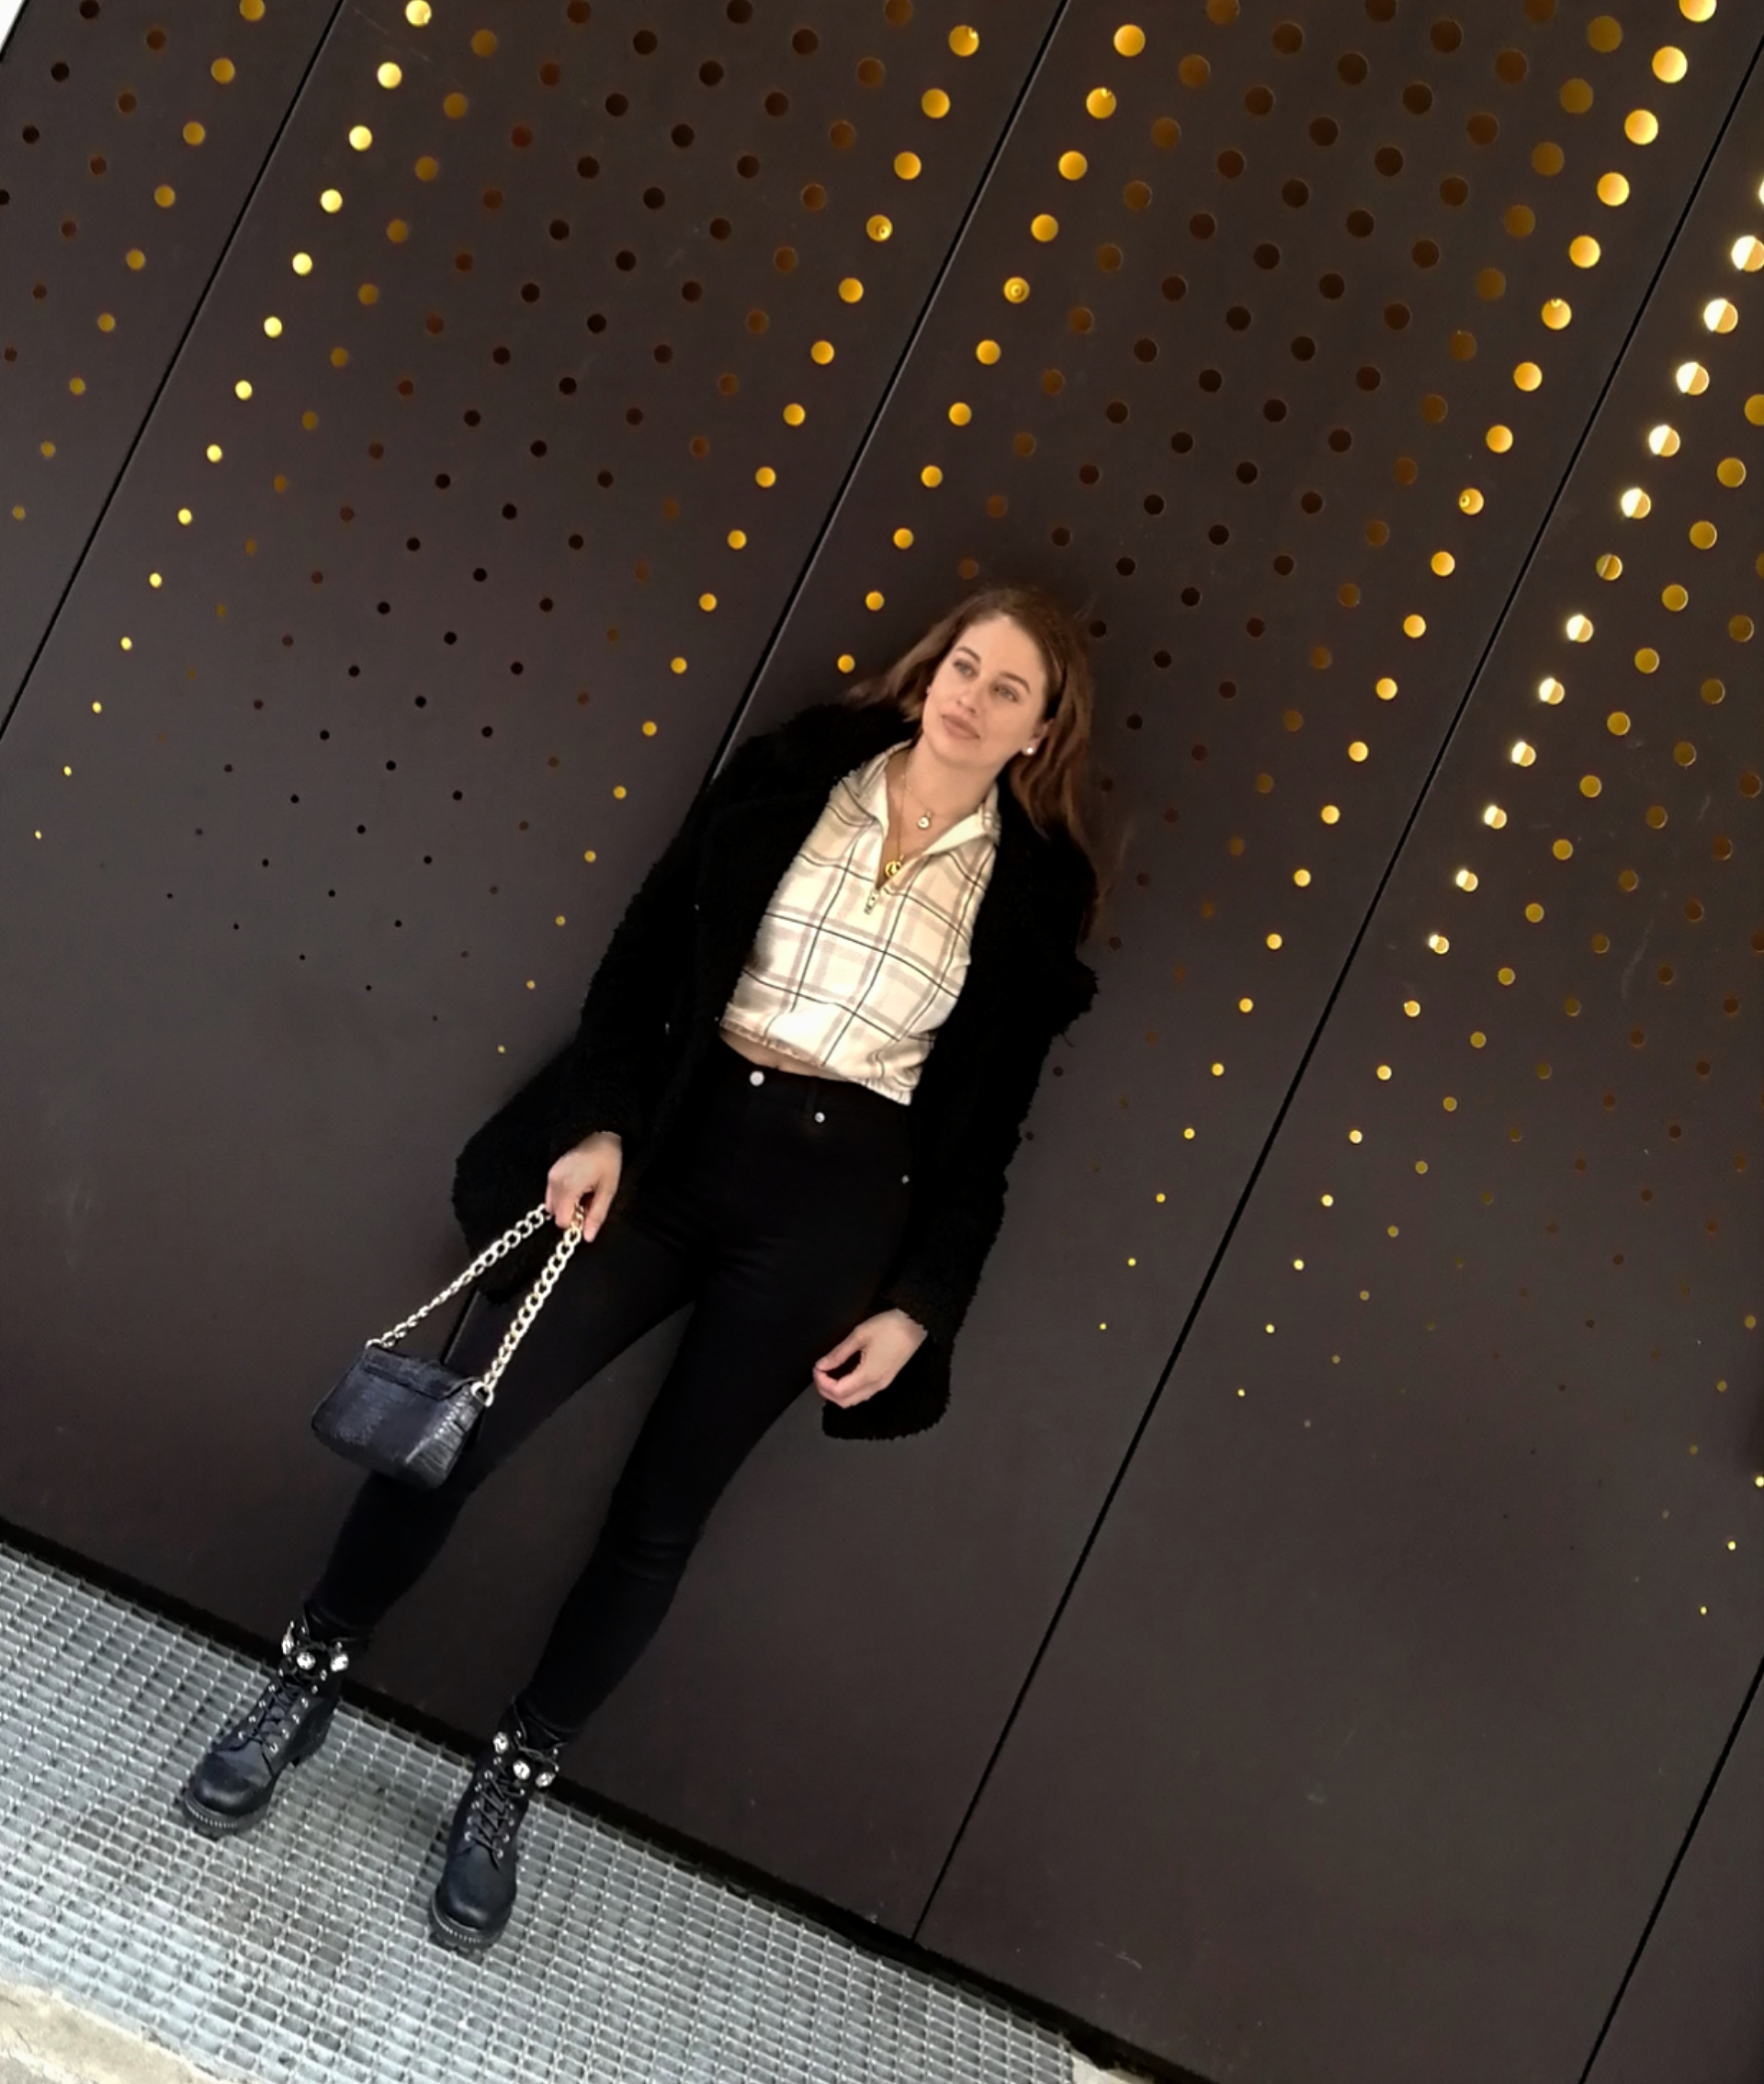 isalicious-blogg-blogging-blogger-blog-mote-trend-stil-fashion-style-outfit-antrekk-look-makeup-sminke-ootod-missguided-drdenim-nelly-nellycom-purse-bag-clarosa-jeans-top-topp-france-norway